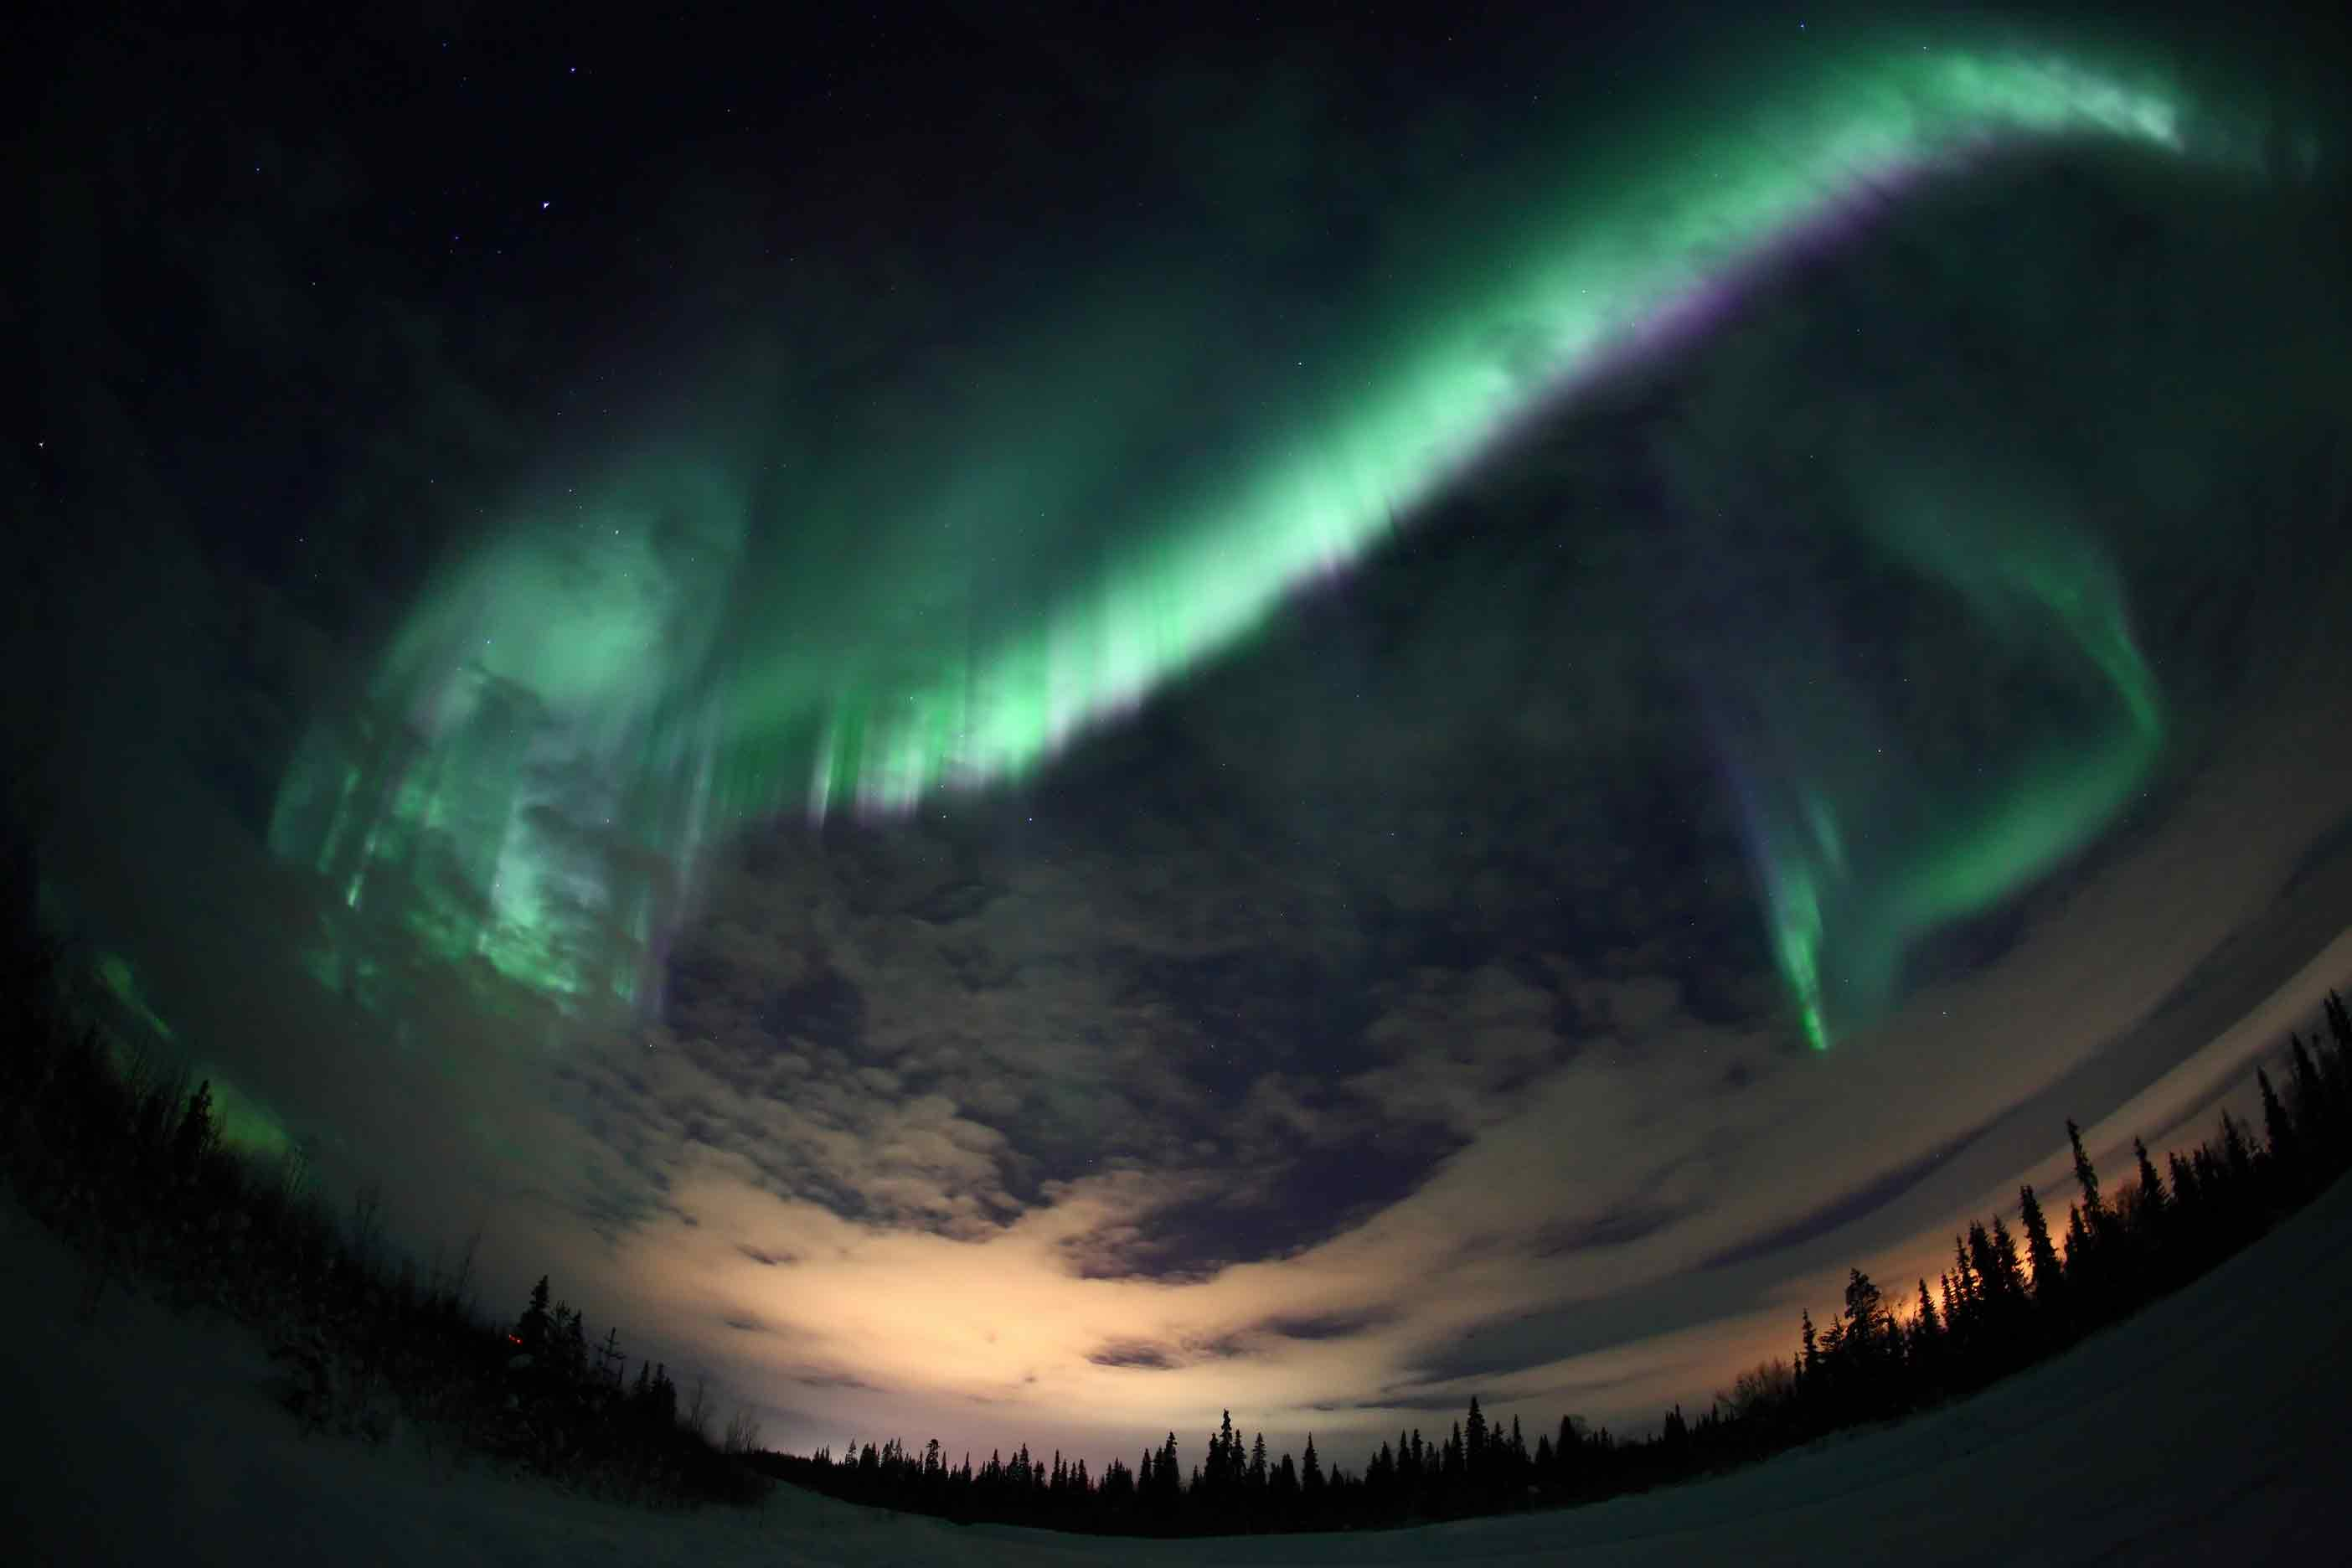 The Northern Lights Appear Every Winter Over Lake Lovozero Lost Somewhere In Kola Peninsula Beyond Arctic Circle Russian Saami Who Live On